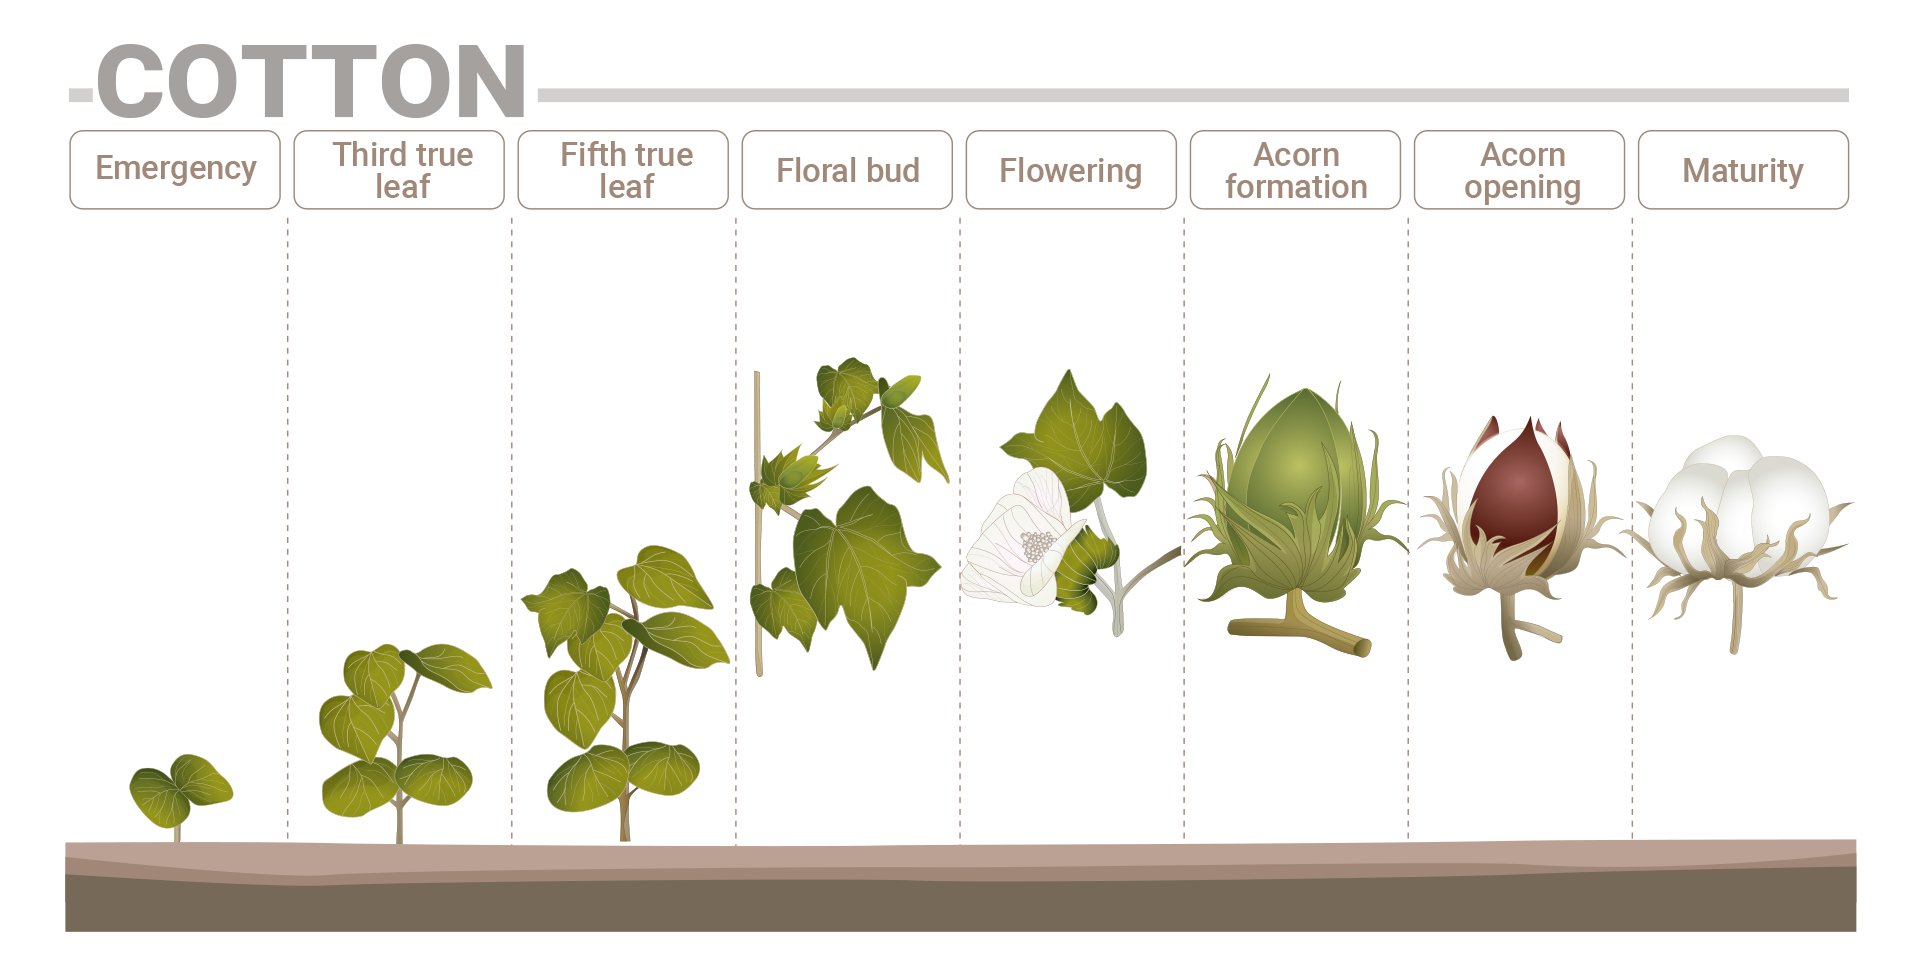 Cotton phenological phases